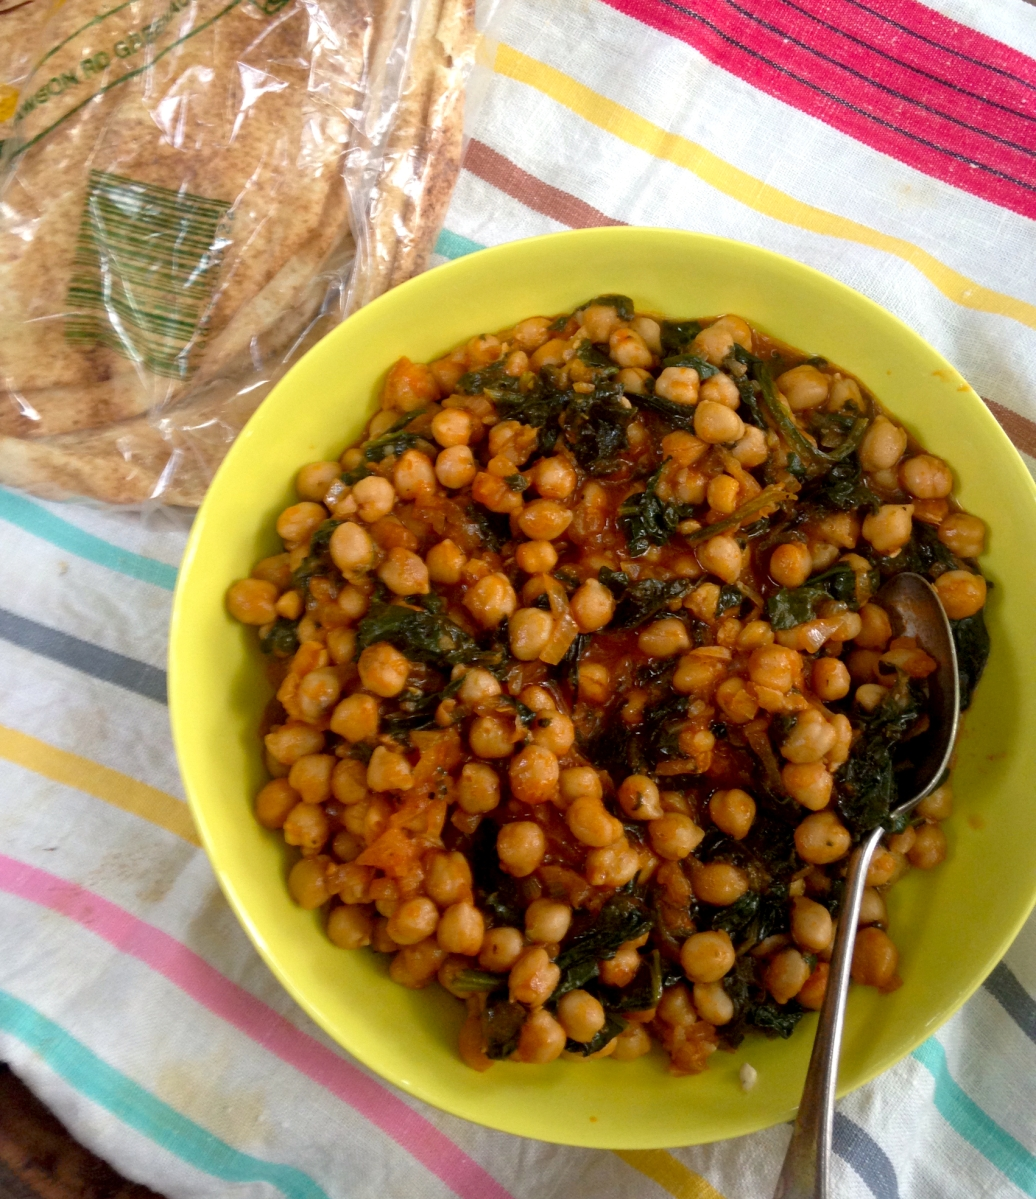 Nivik - Chickpeas with spinach